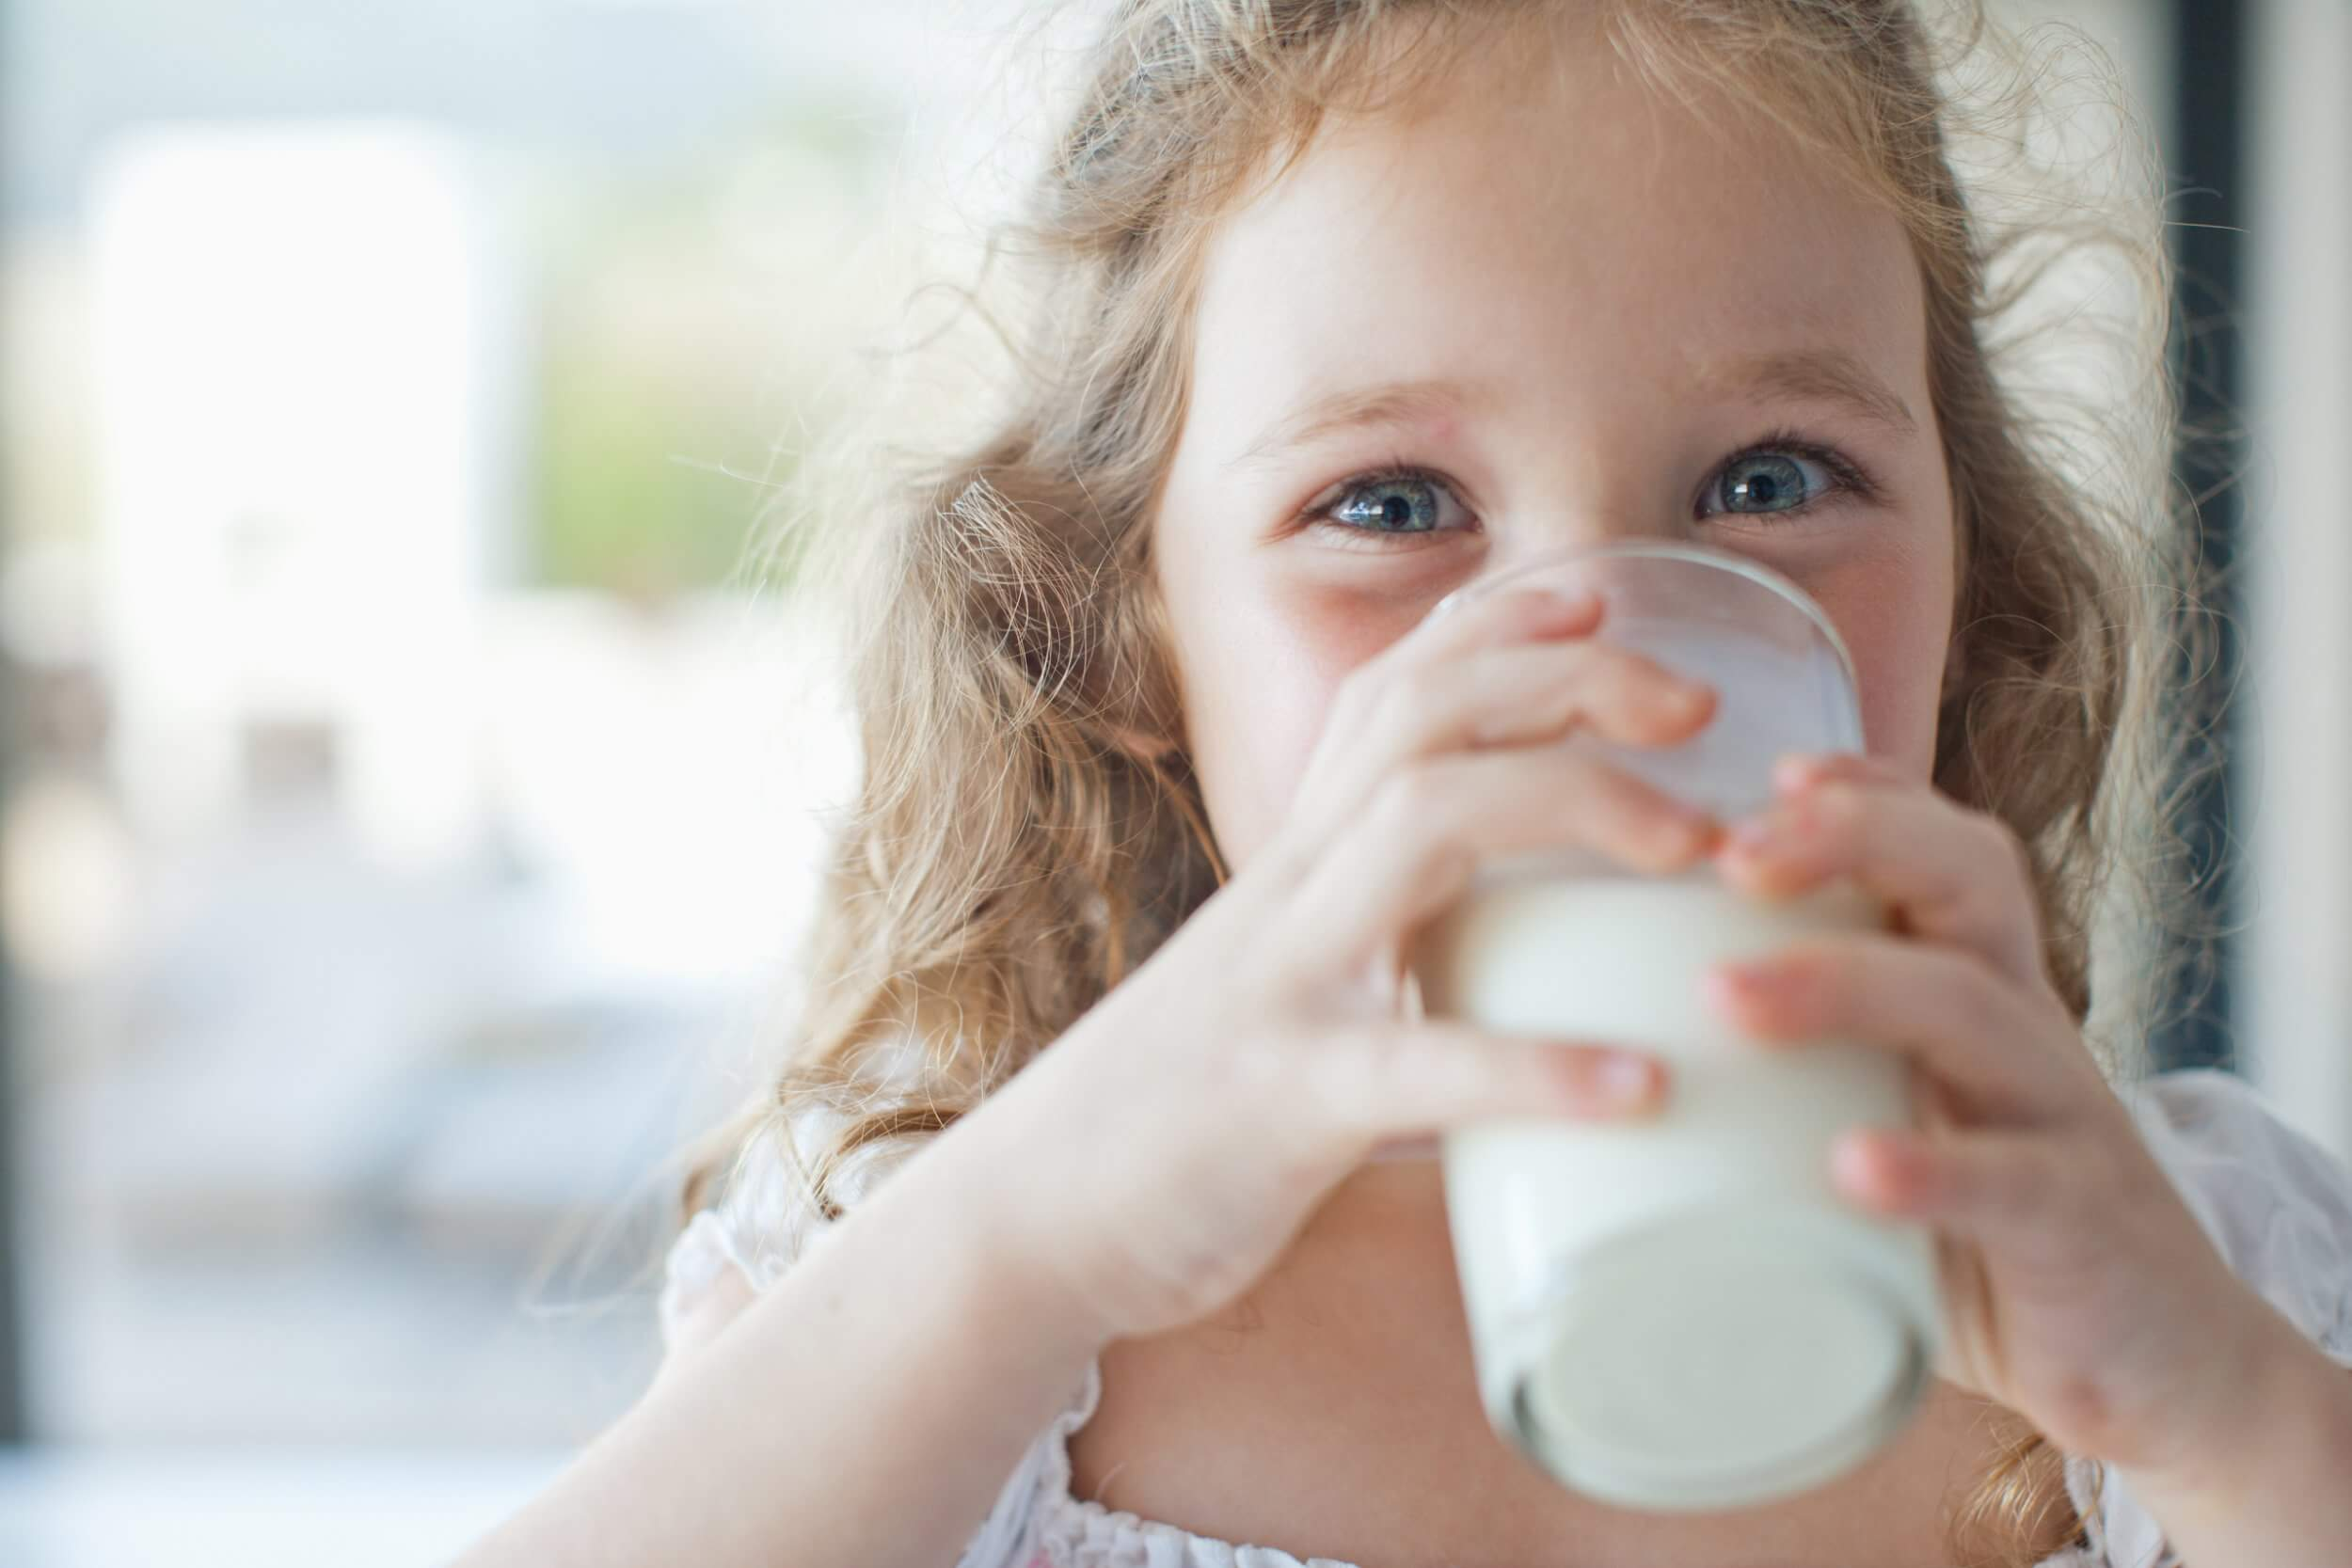 Raw Milk May Contribute To Kidney Failure In Children